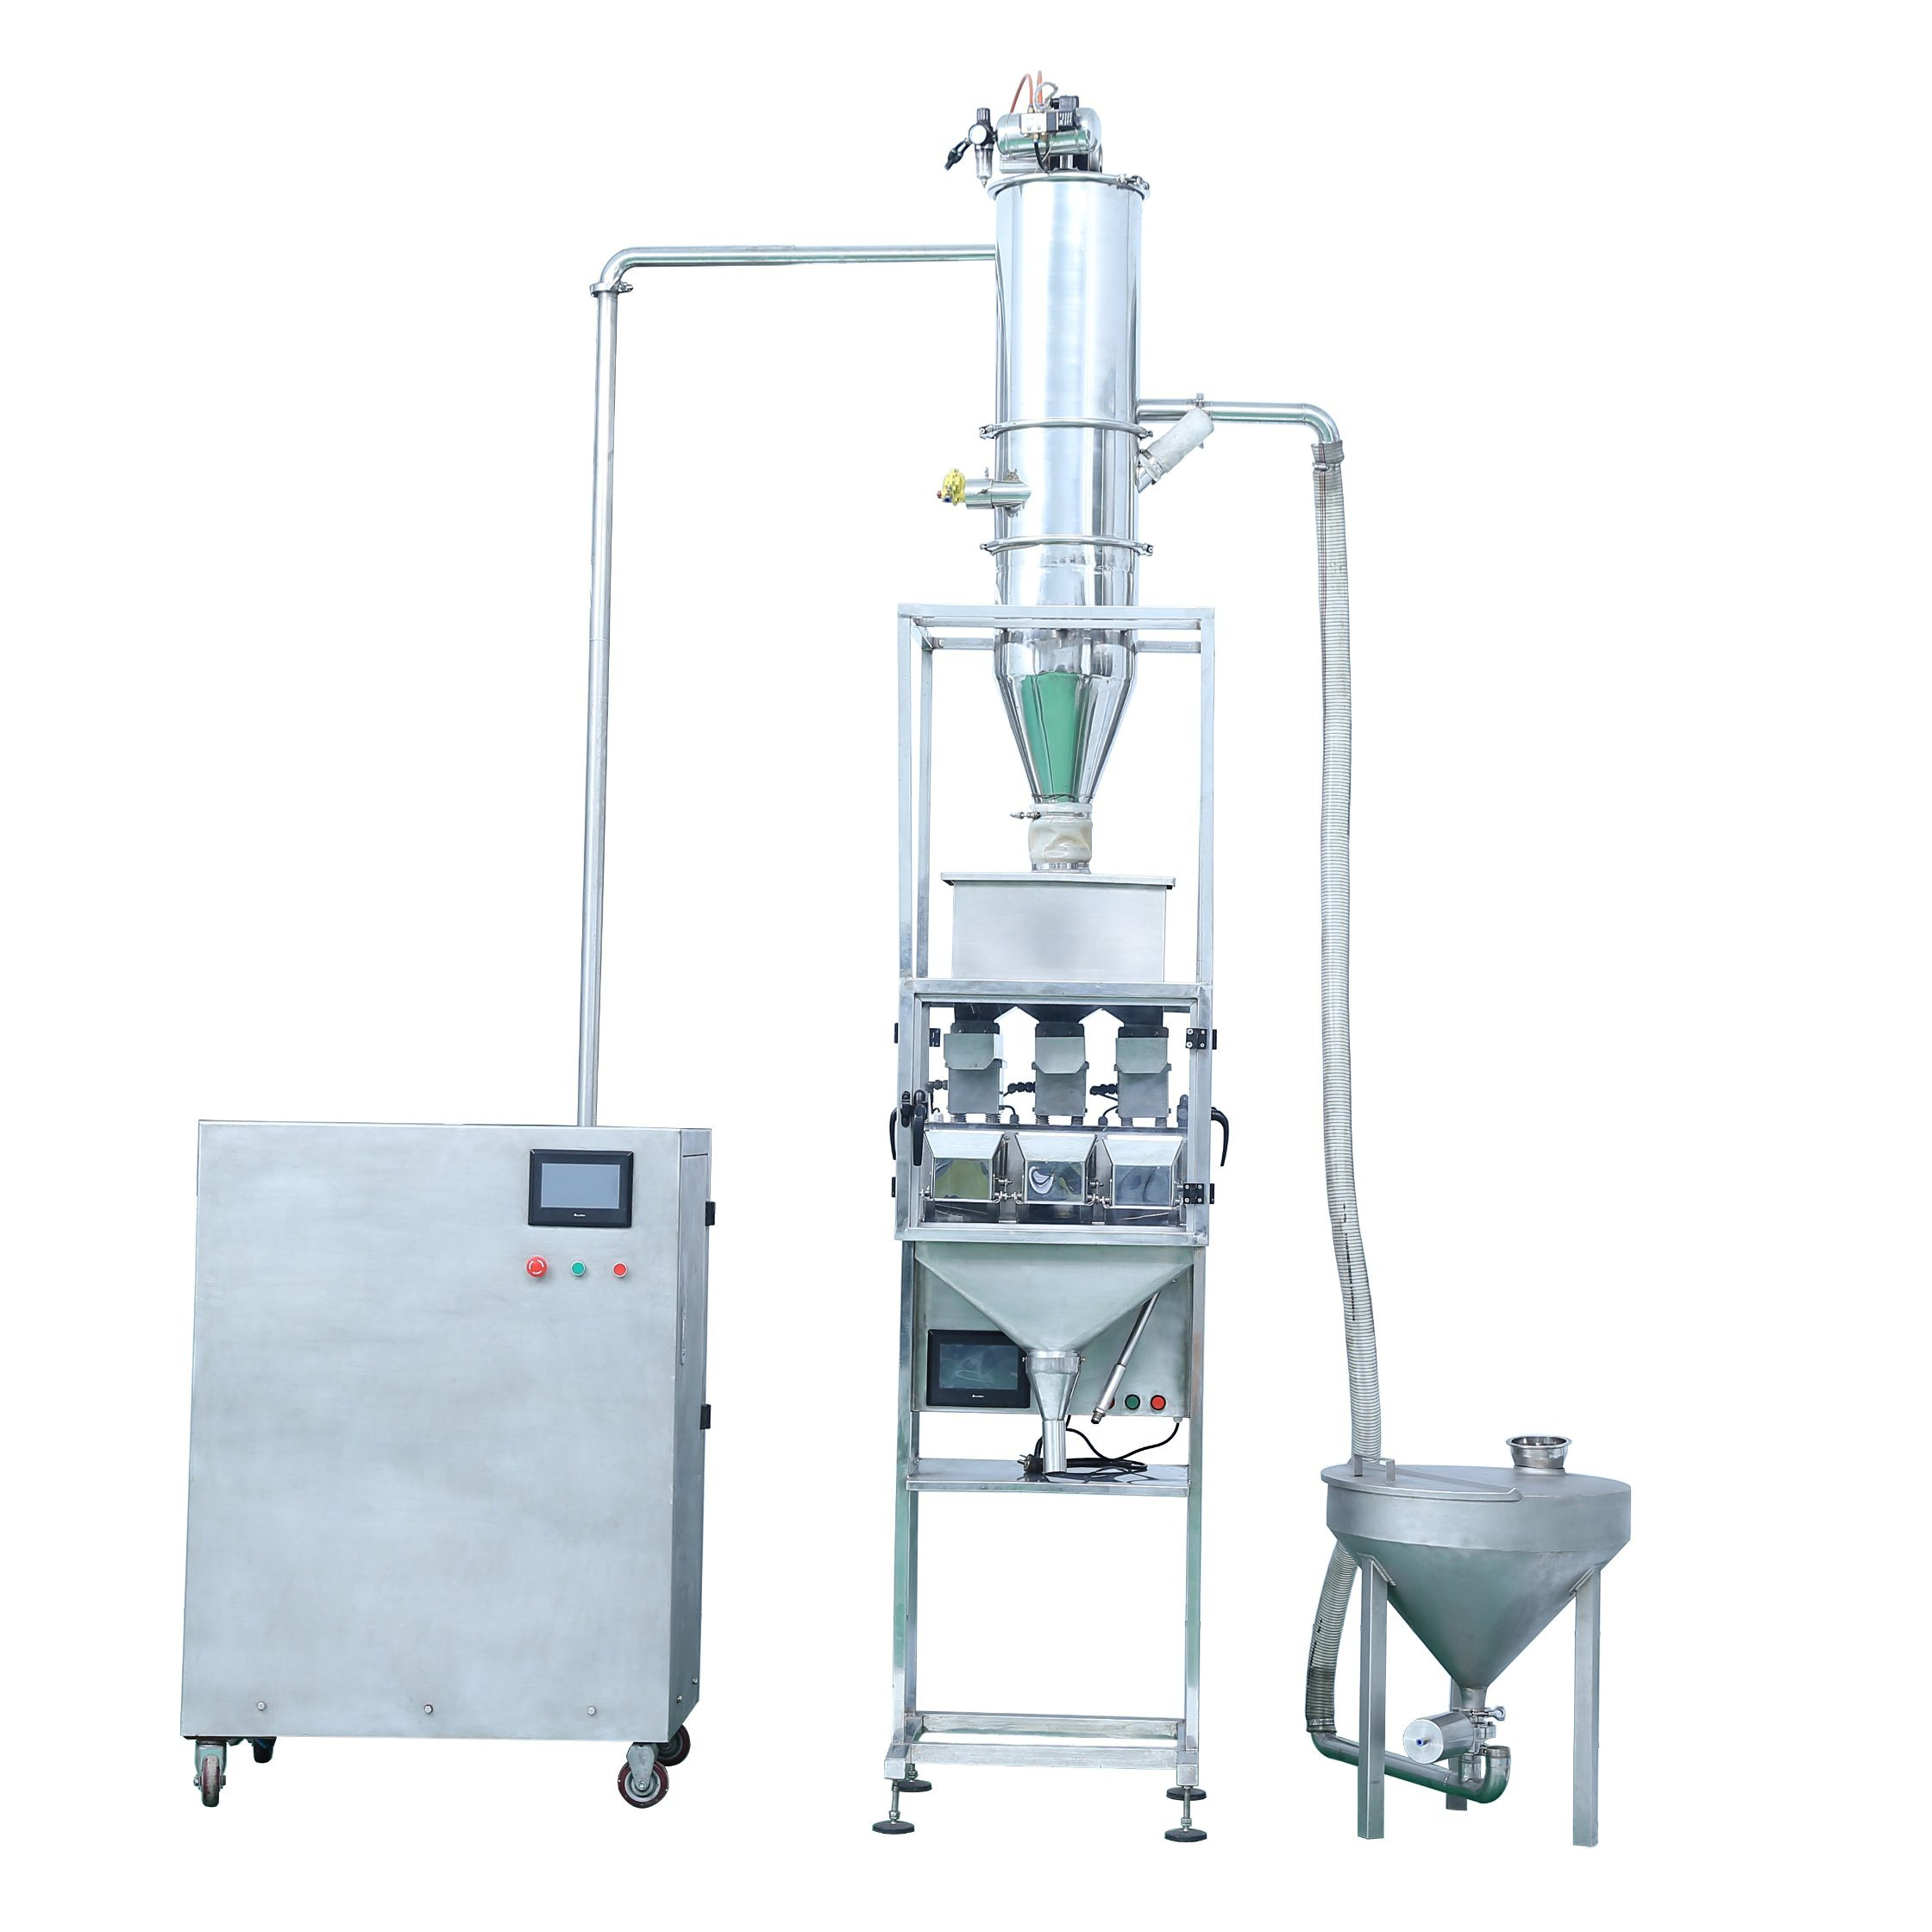 Nuoen Pneumatic Vacuum Feeding Machine for Particles/Powder